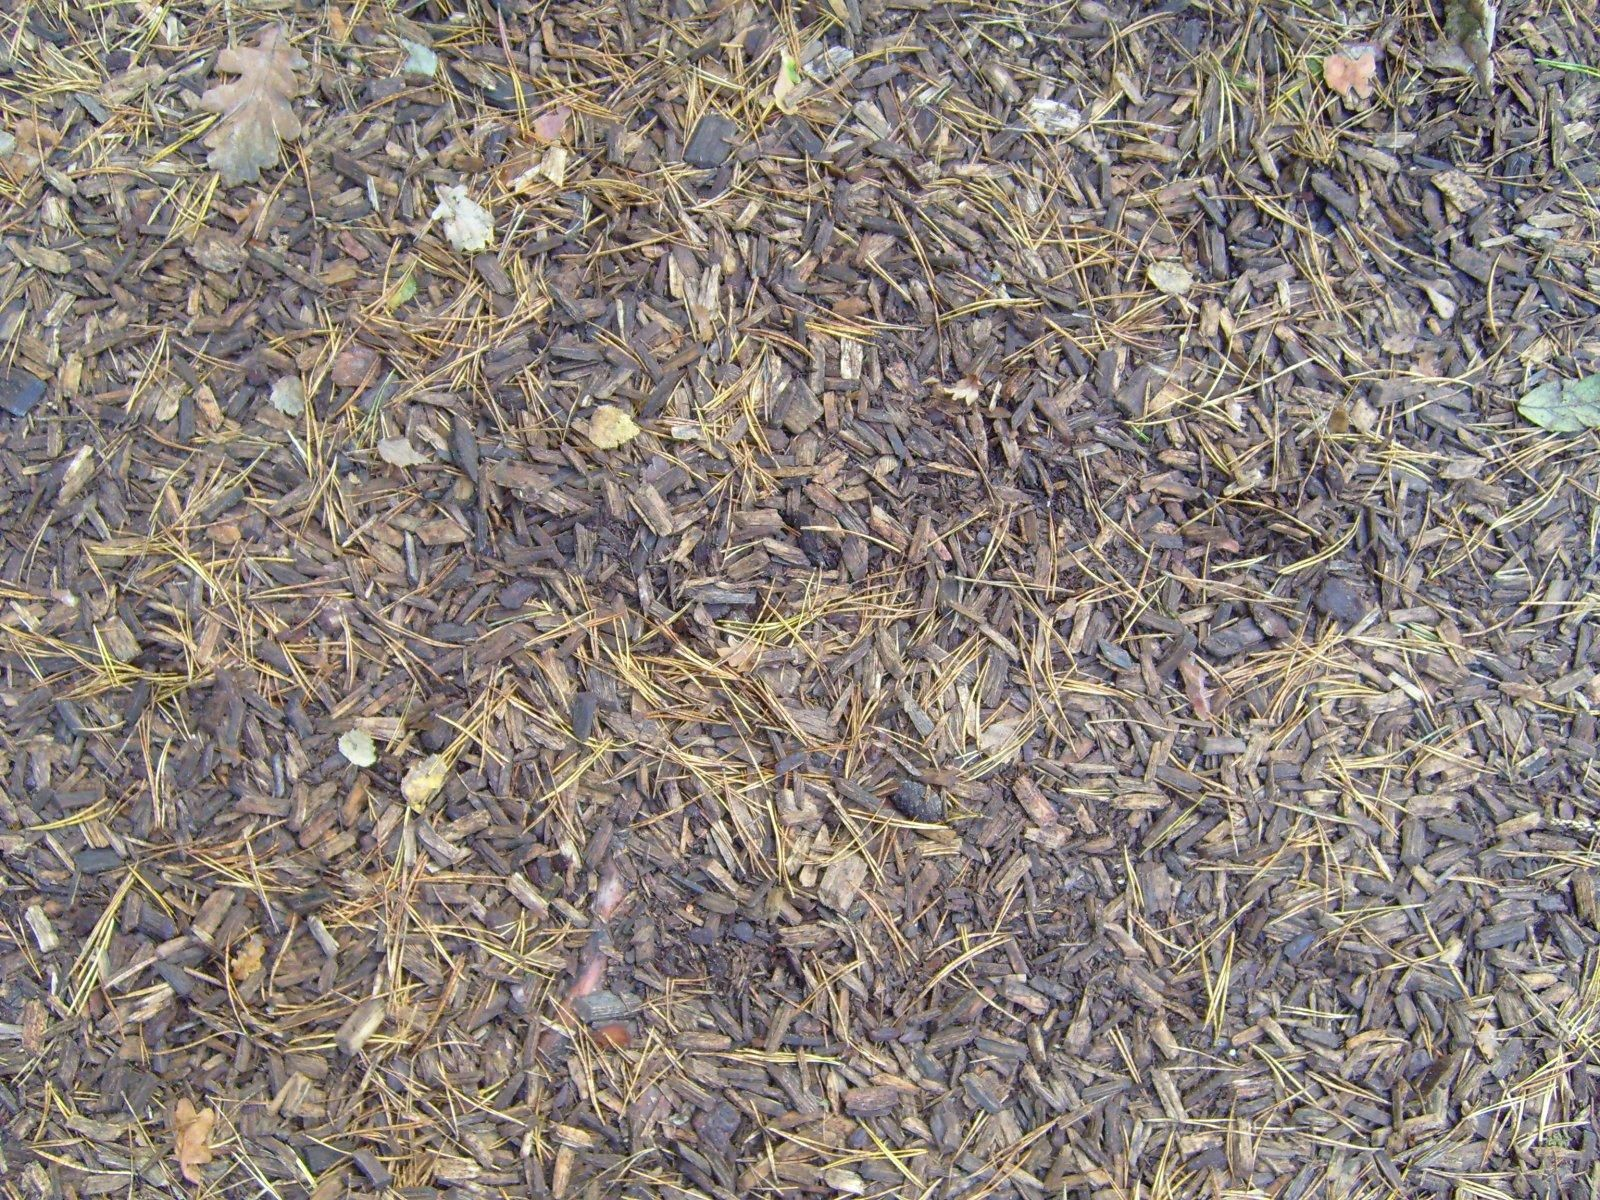 File forest ground wood chips pine needles g wikimedia